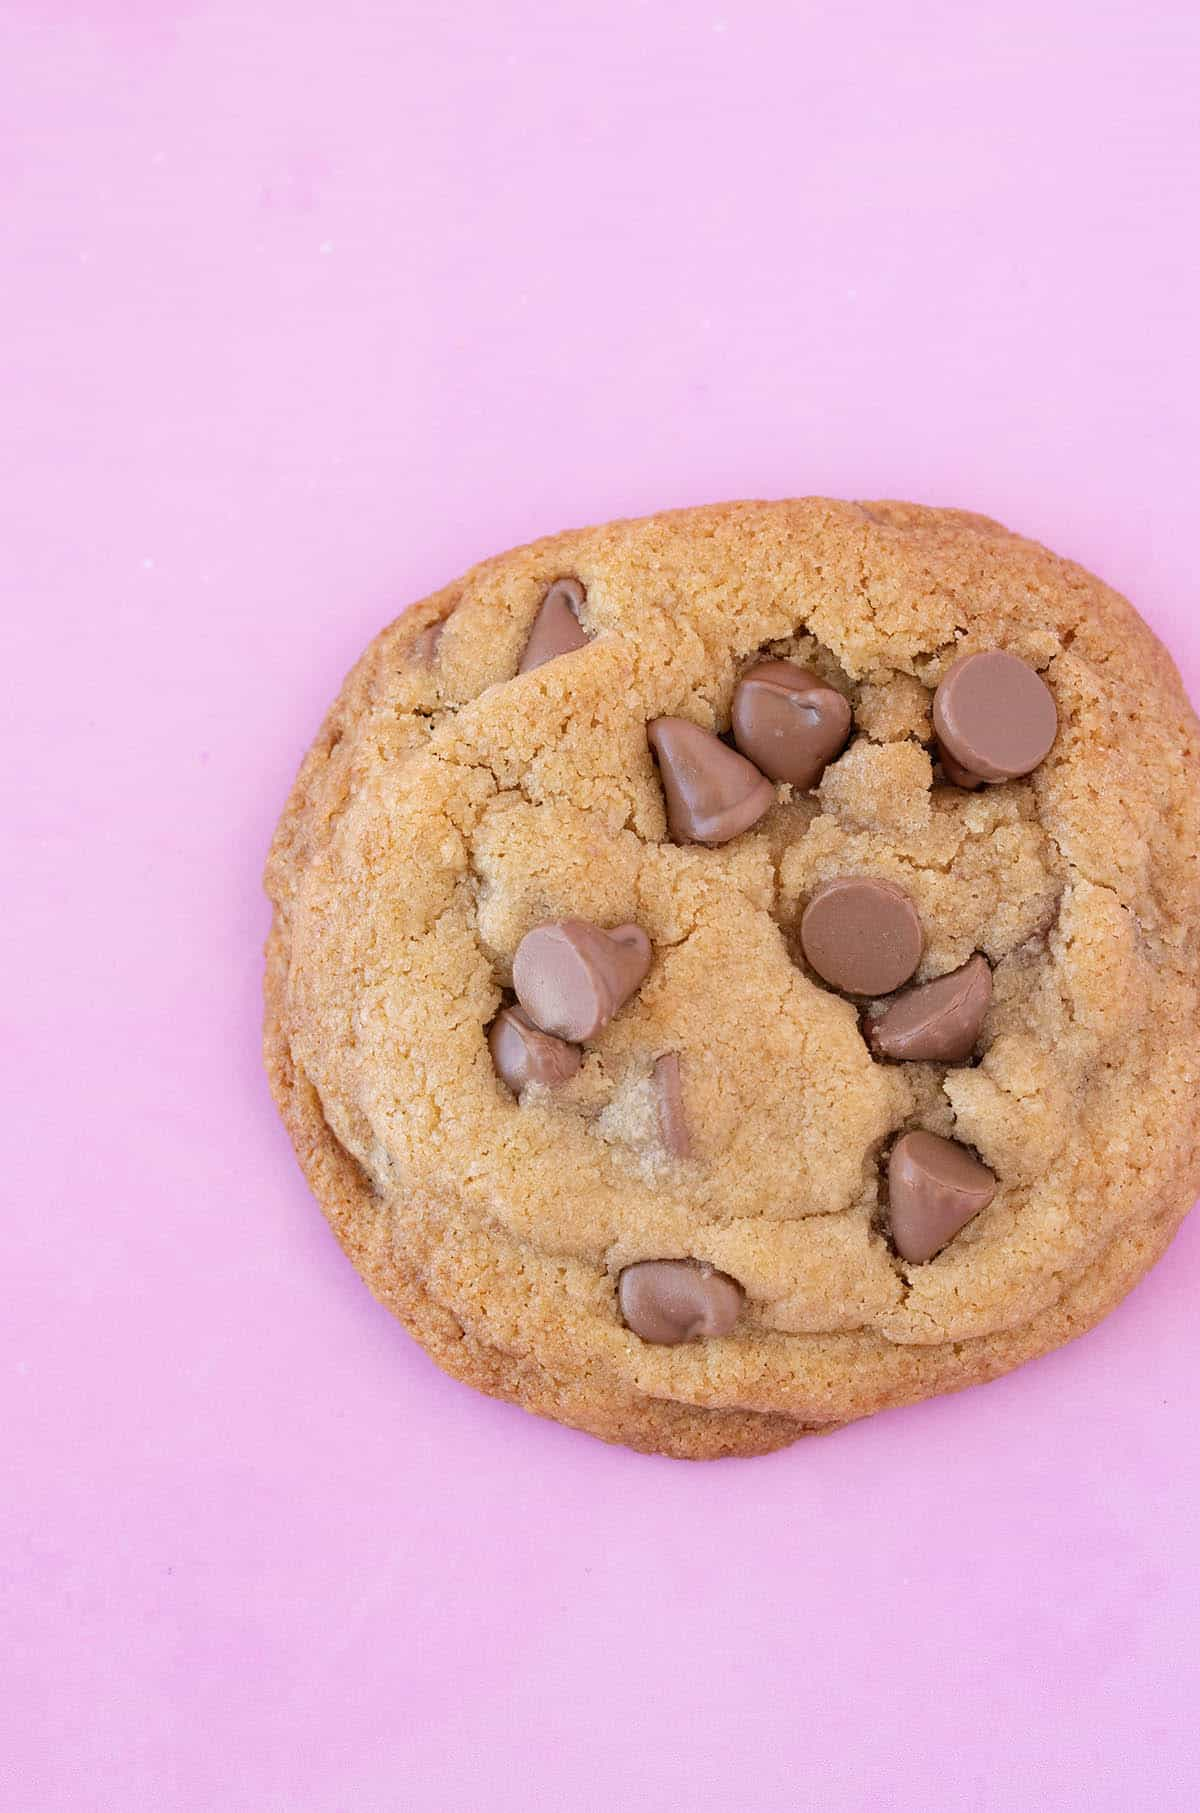 Top view of a golden chocolate chip cookie on a pink background